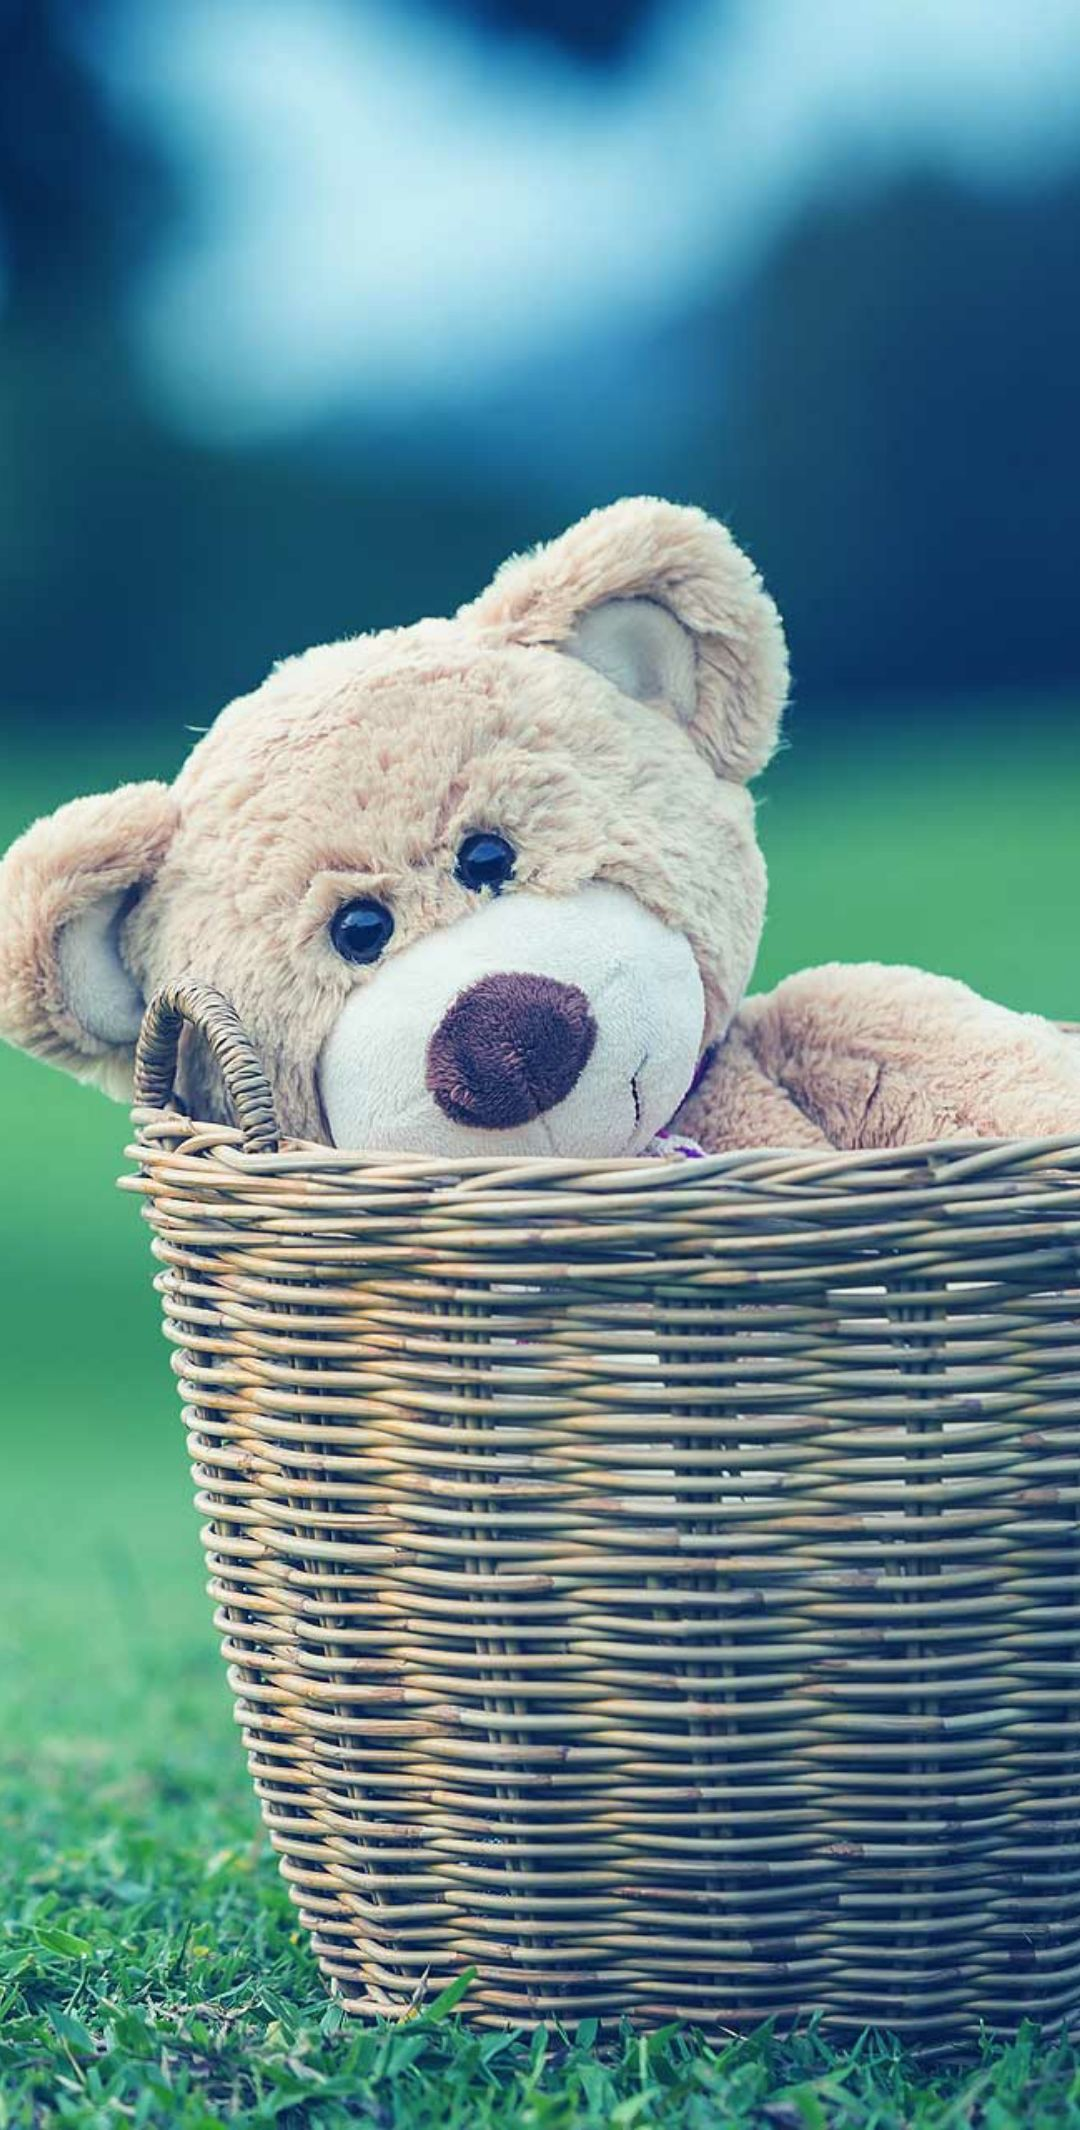 Apple Iphone Android Pixel Wallpaper Teddy Bear Wallpaper Teddy Bear Teddy